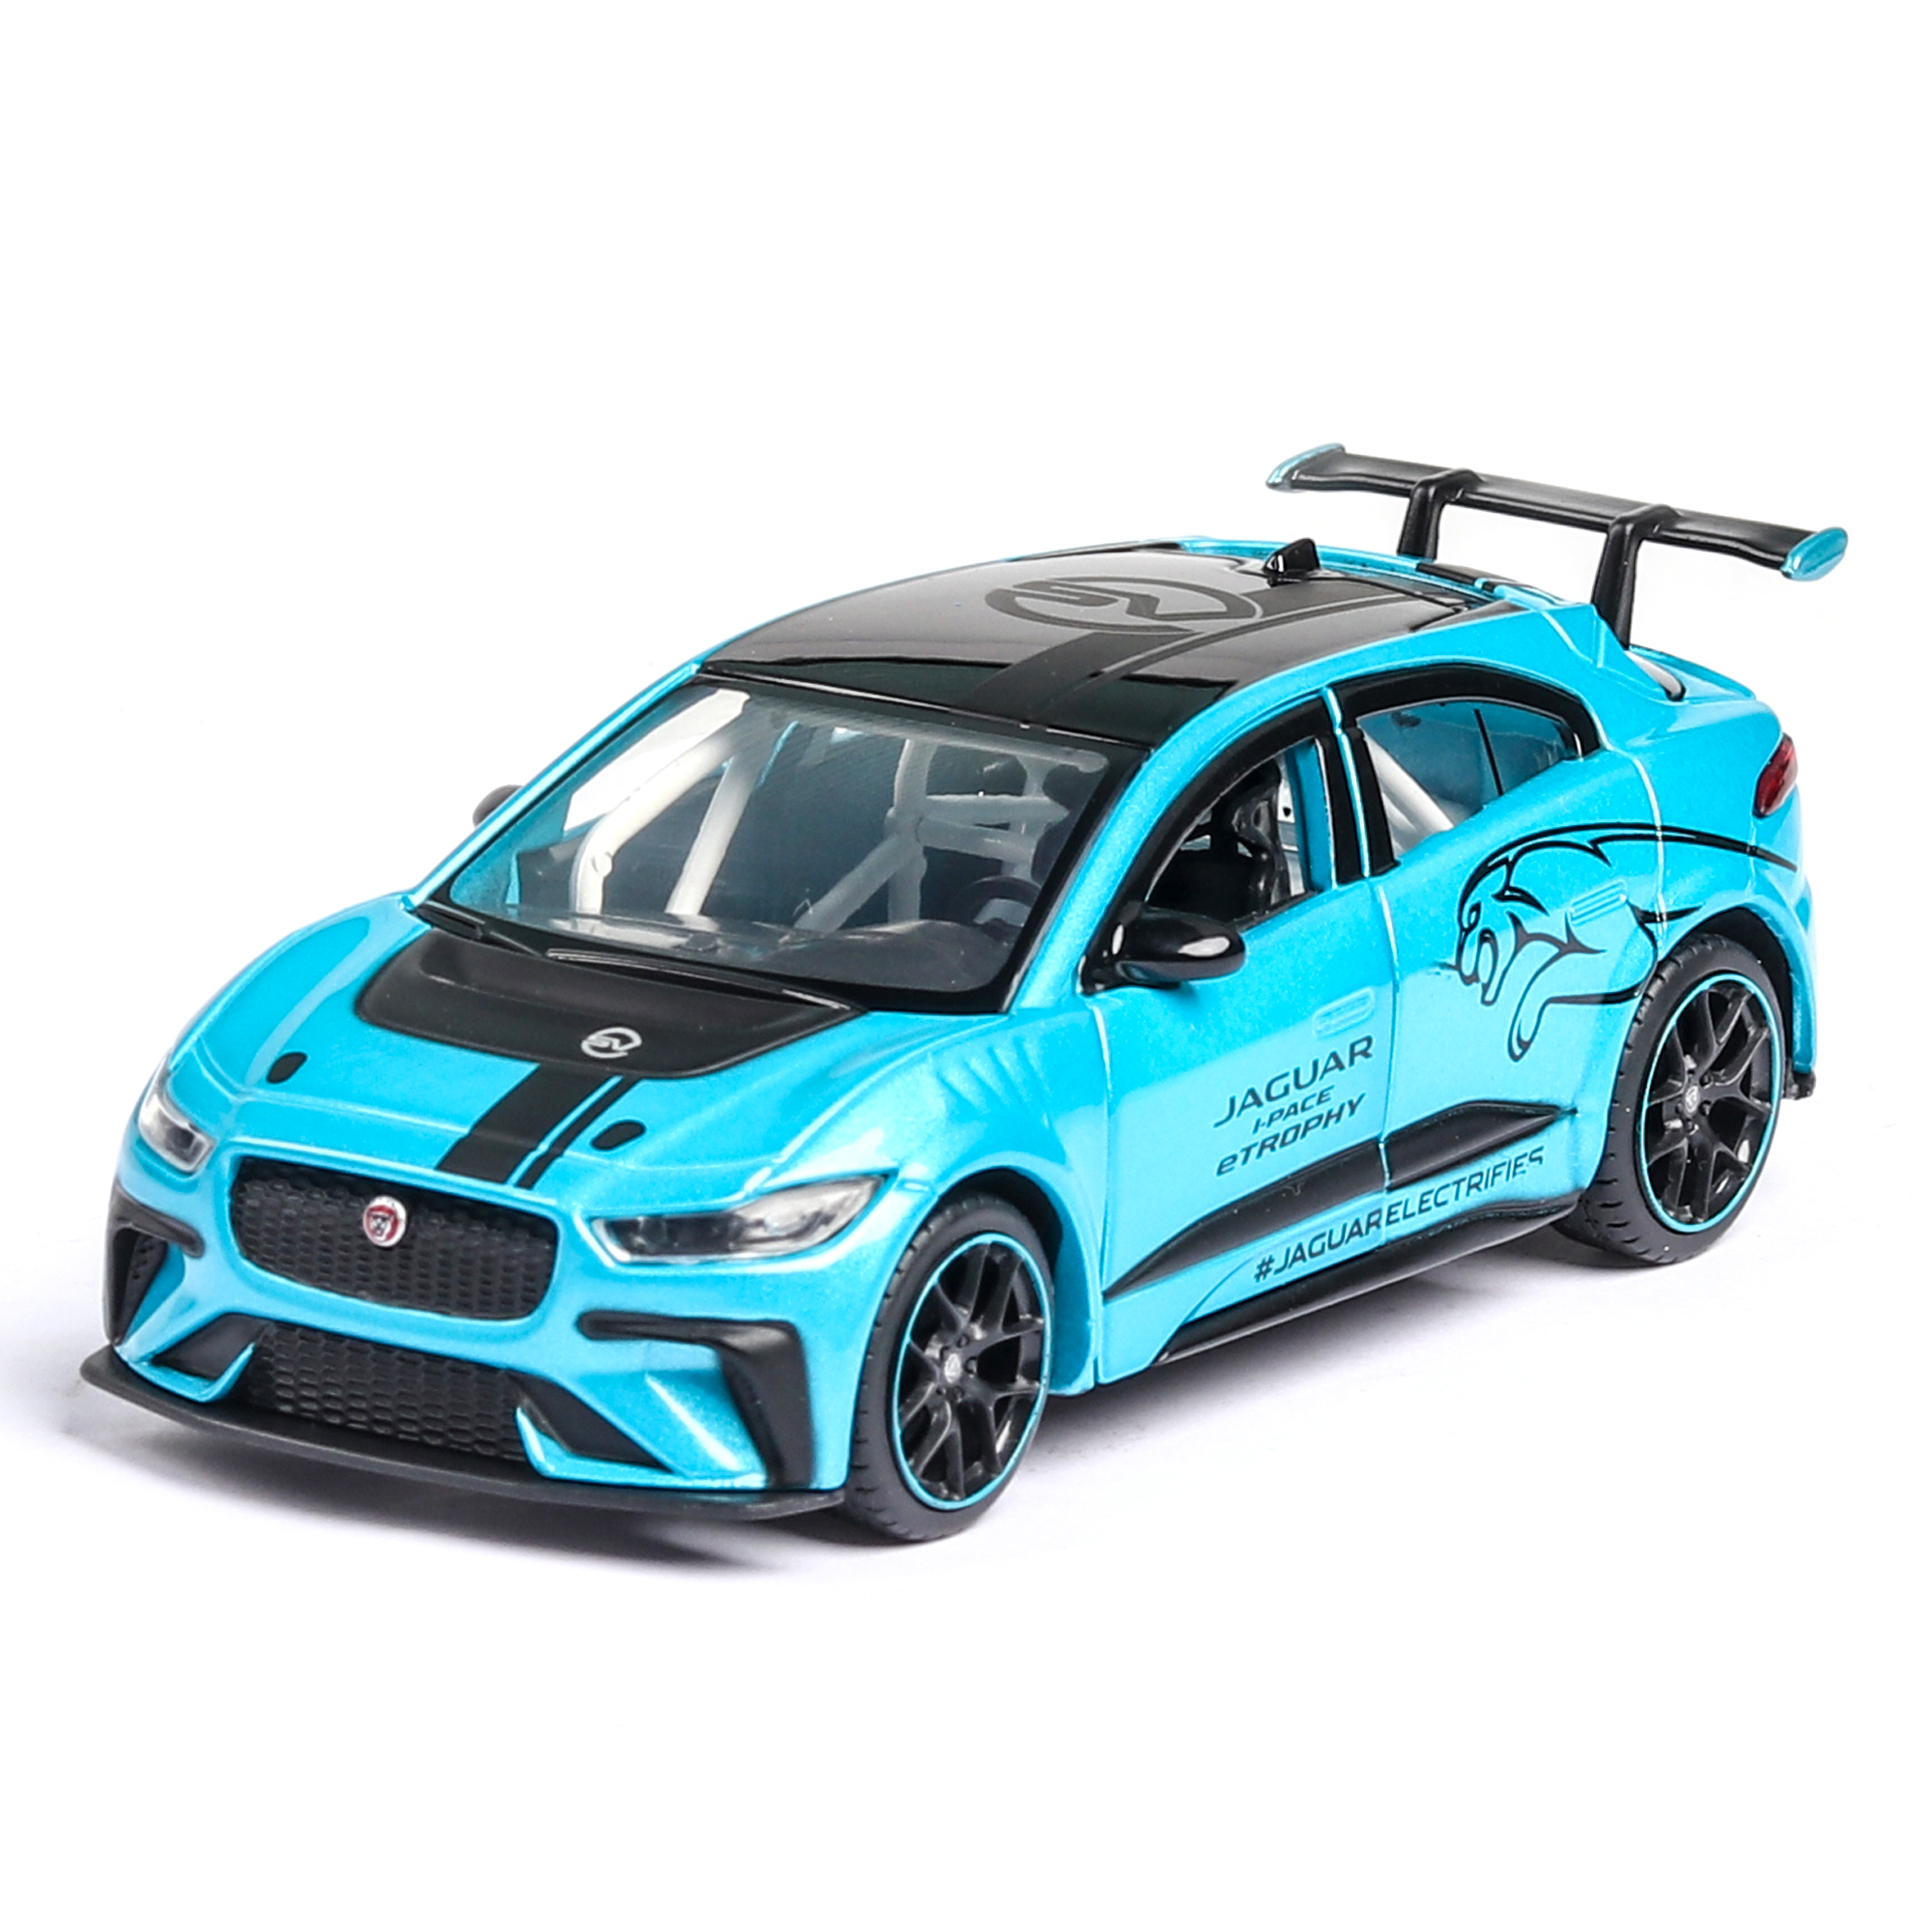 New 1:36 JAGUAR I-PACE Diecast Toy Vehicles Pull Back Car Sports Model Car Super Racing Lifting Tail Hot Wheel For Children Toy